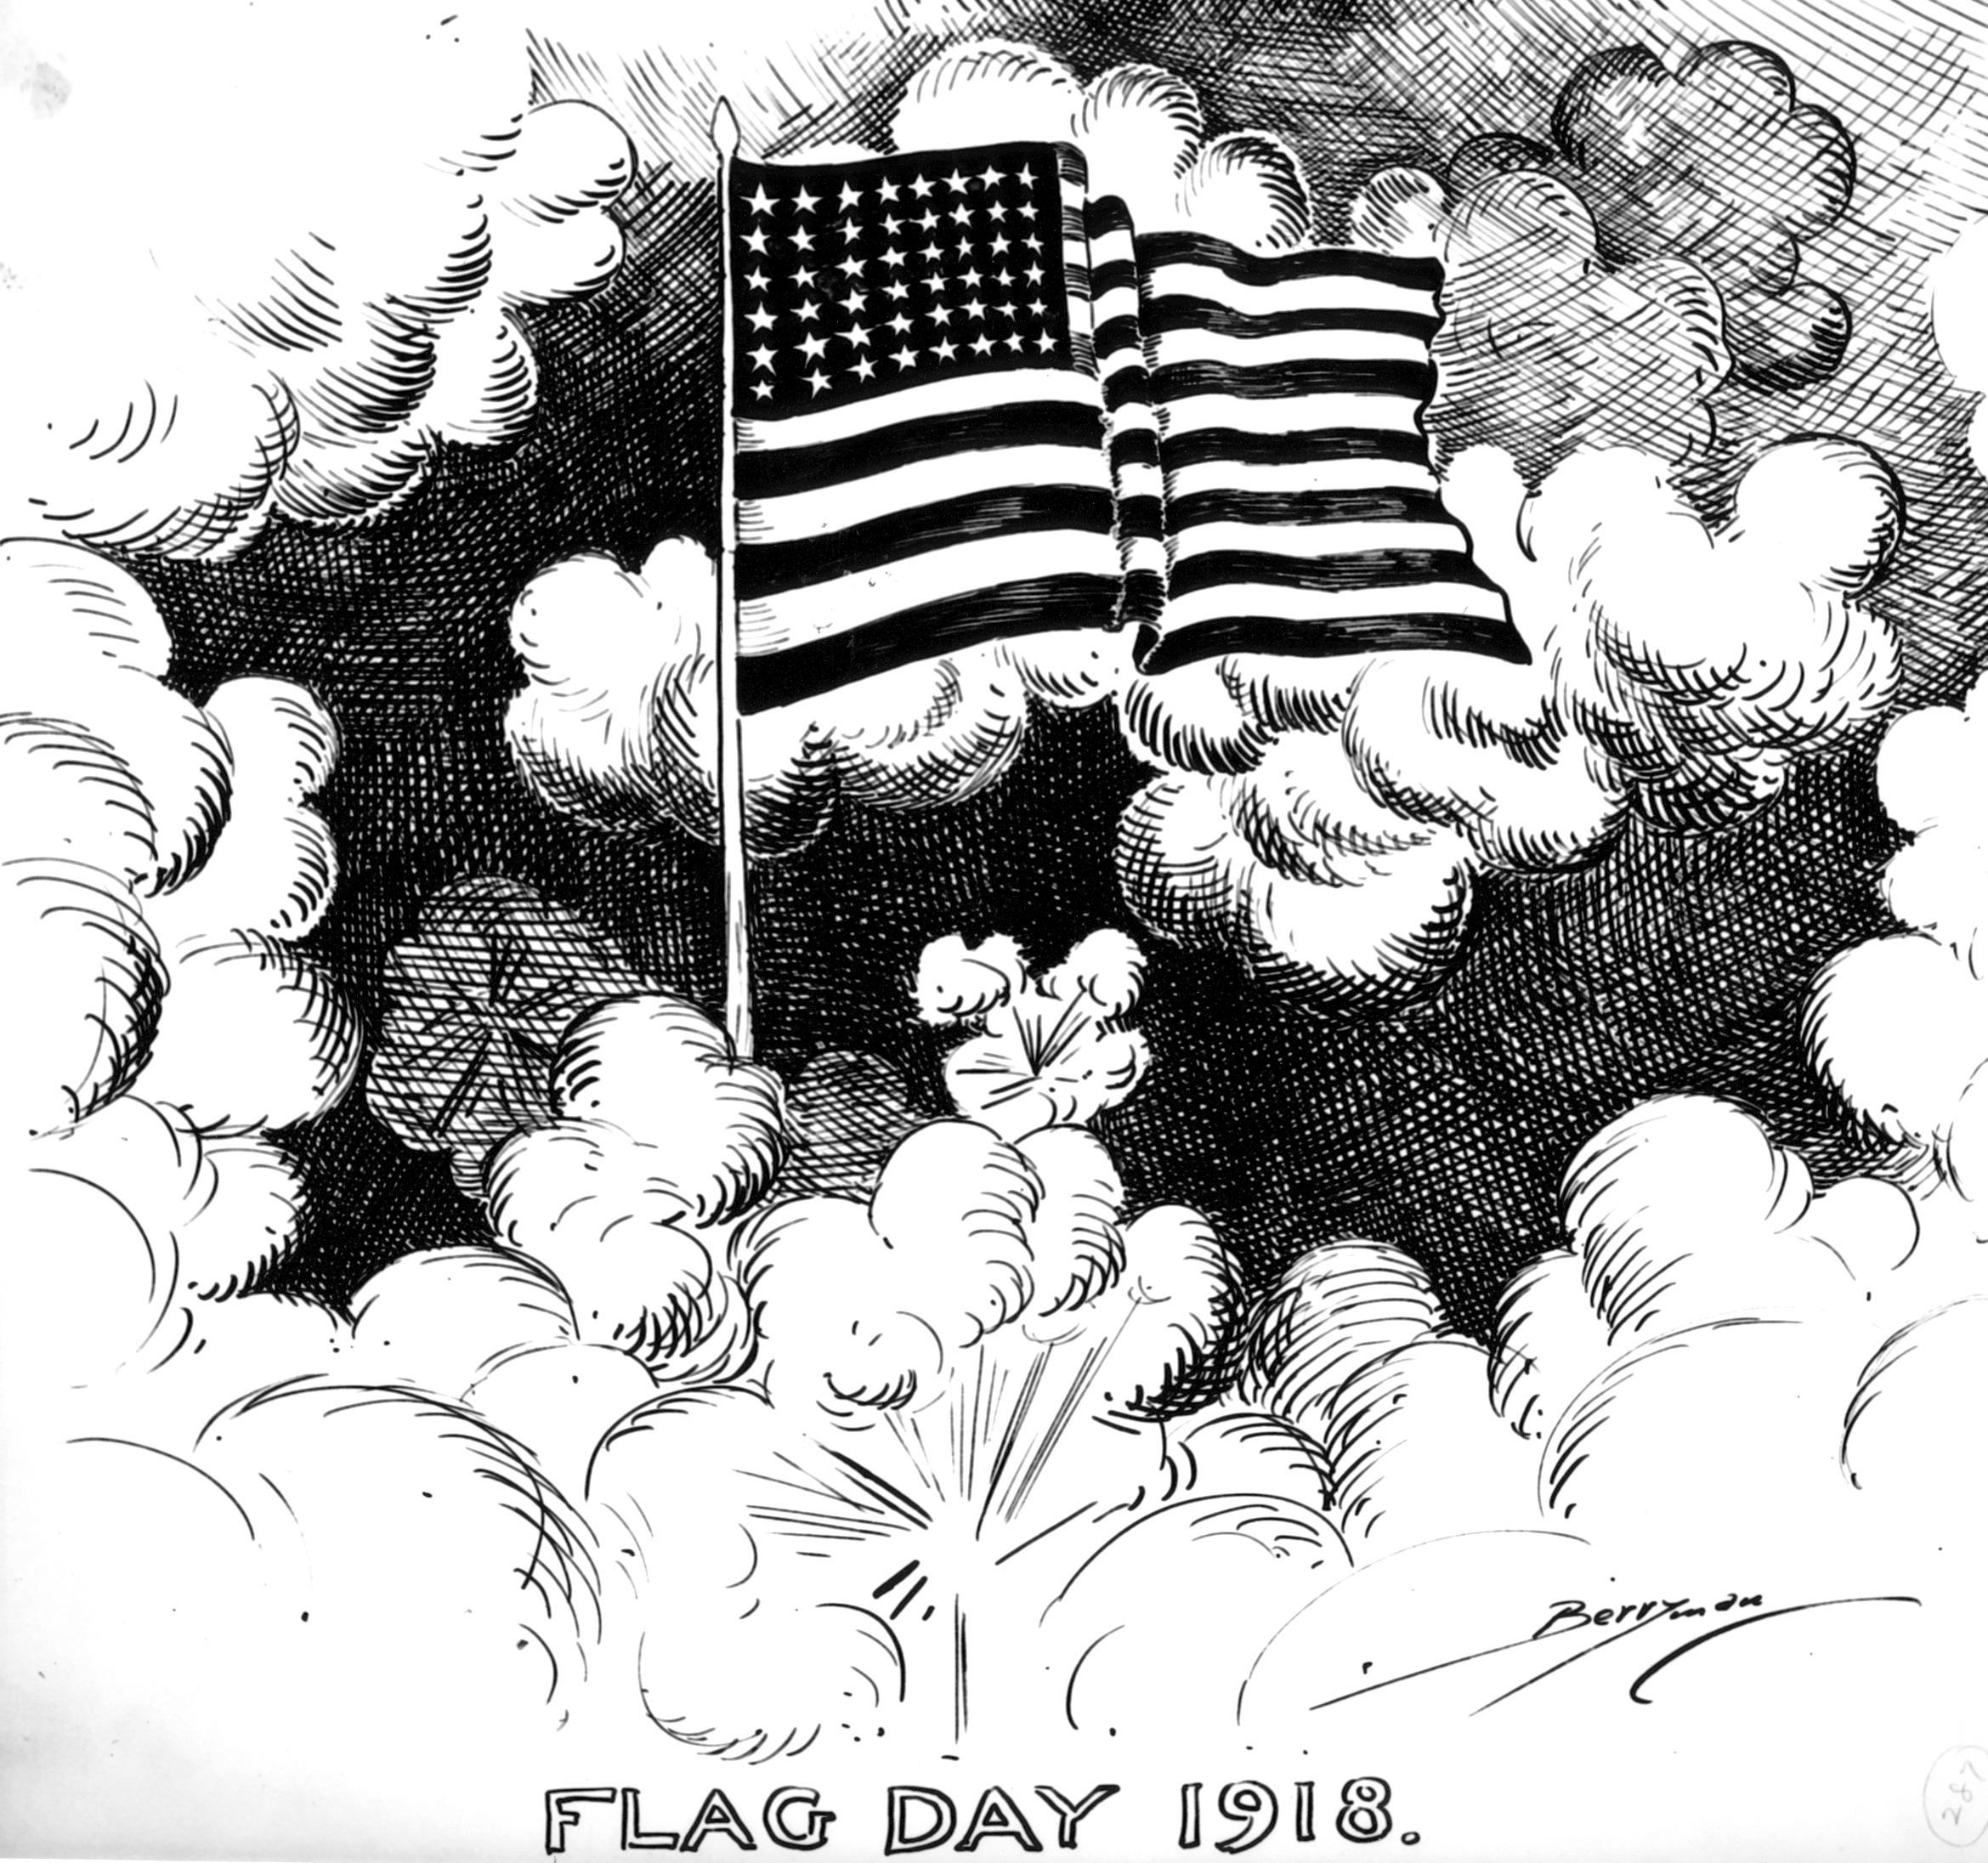 Cartoonist Clifford Berryman highlights the annual Flag Day with an American flag waving among the light and dark clouds caused by the gunfire of battles. (National Archives Identifier 6011429)